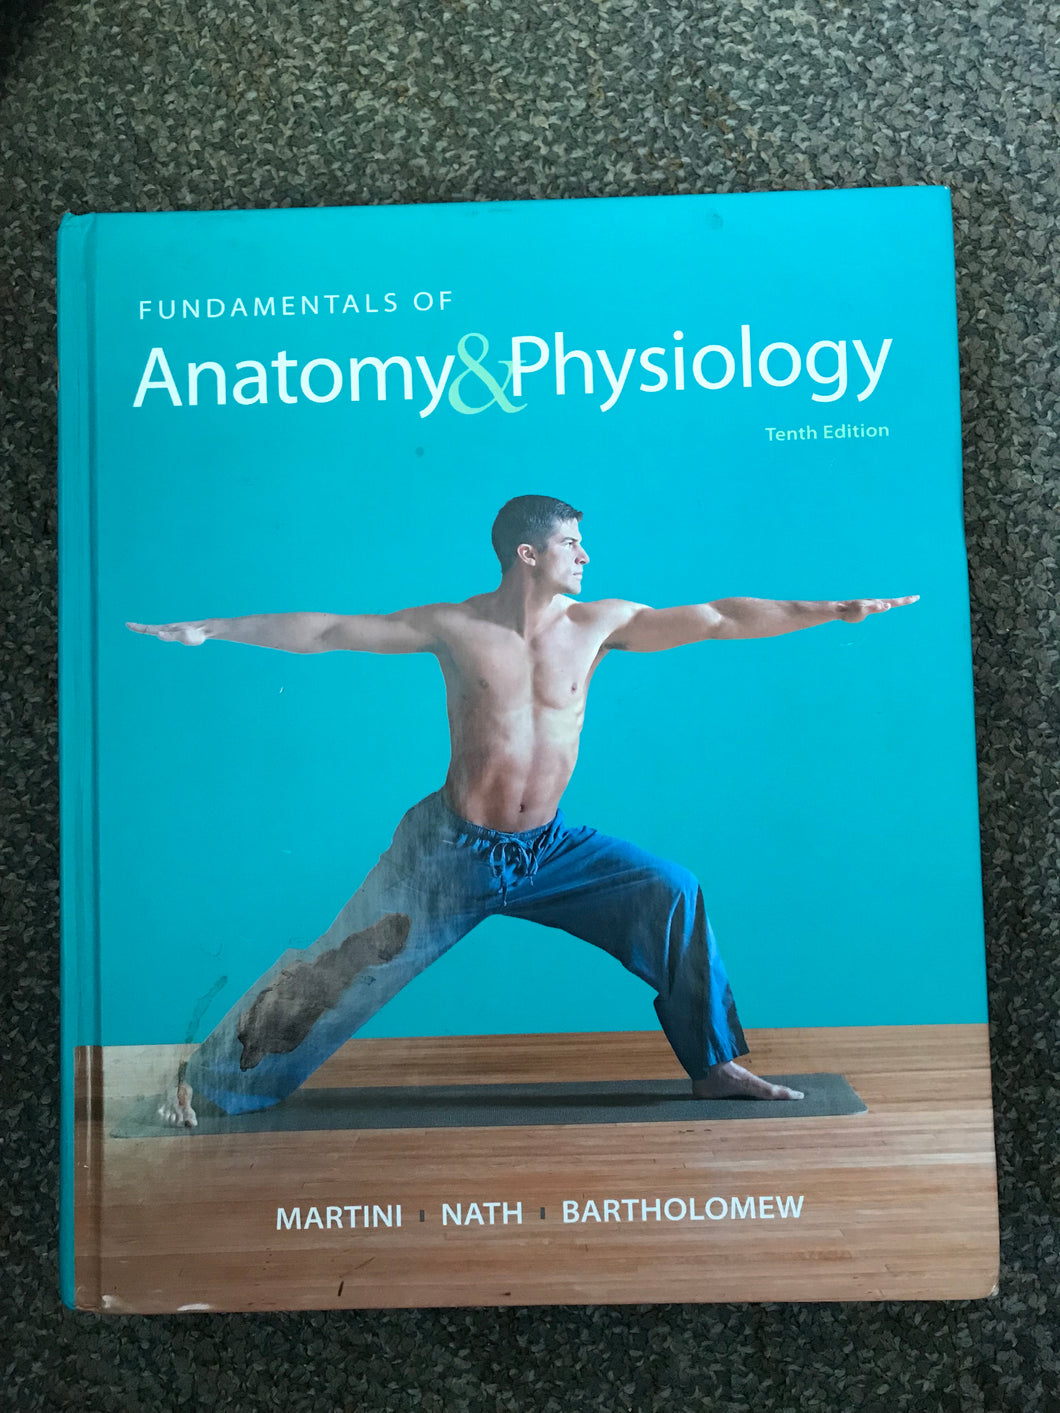 HES-234 & 235: Fundamentals of Anatomy & Physiology